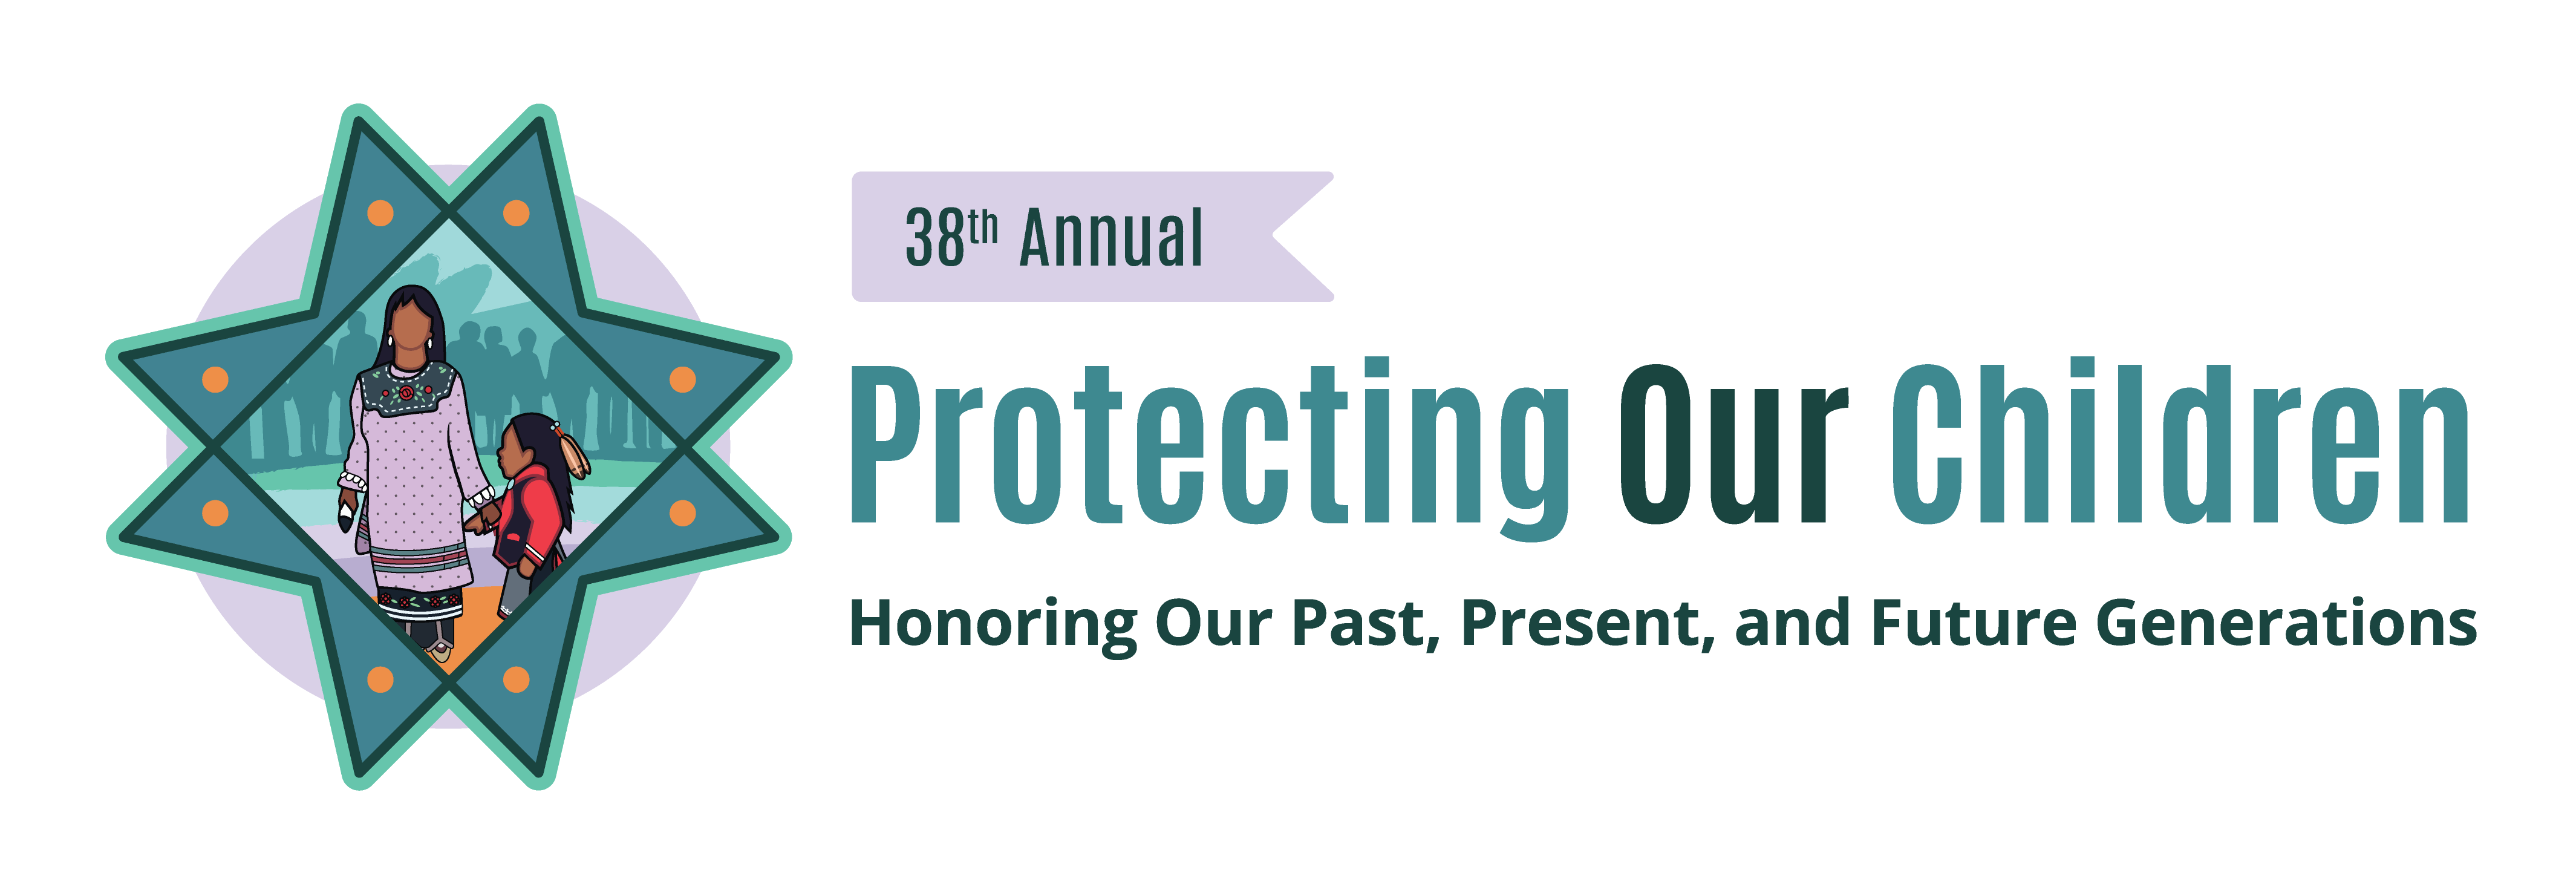 38th Annual Protecting Our Children Conference